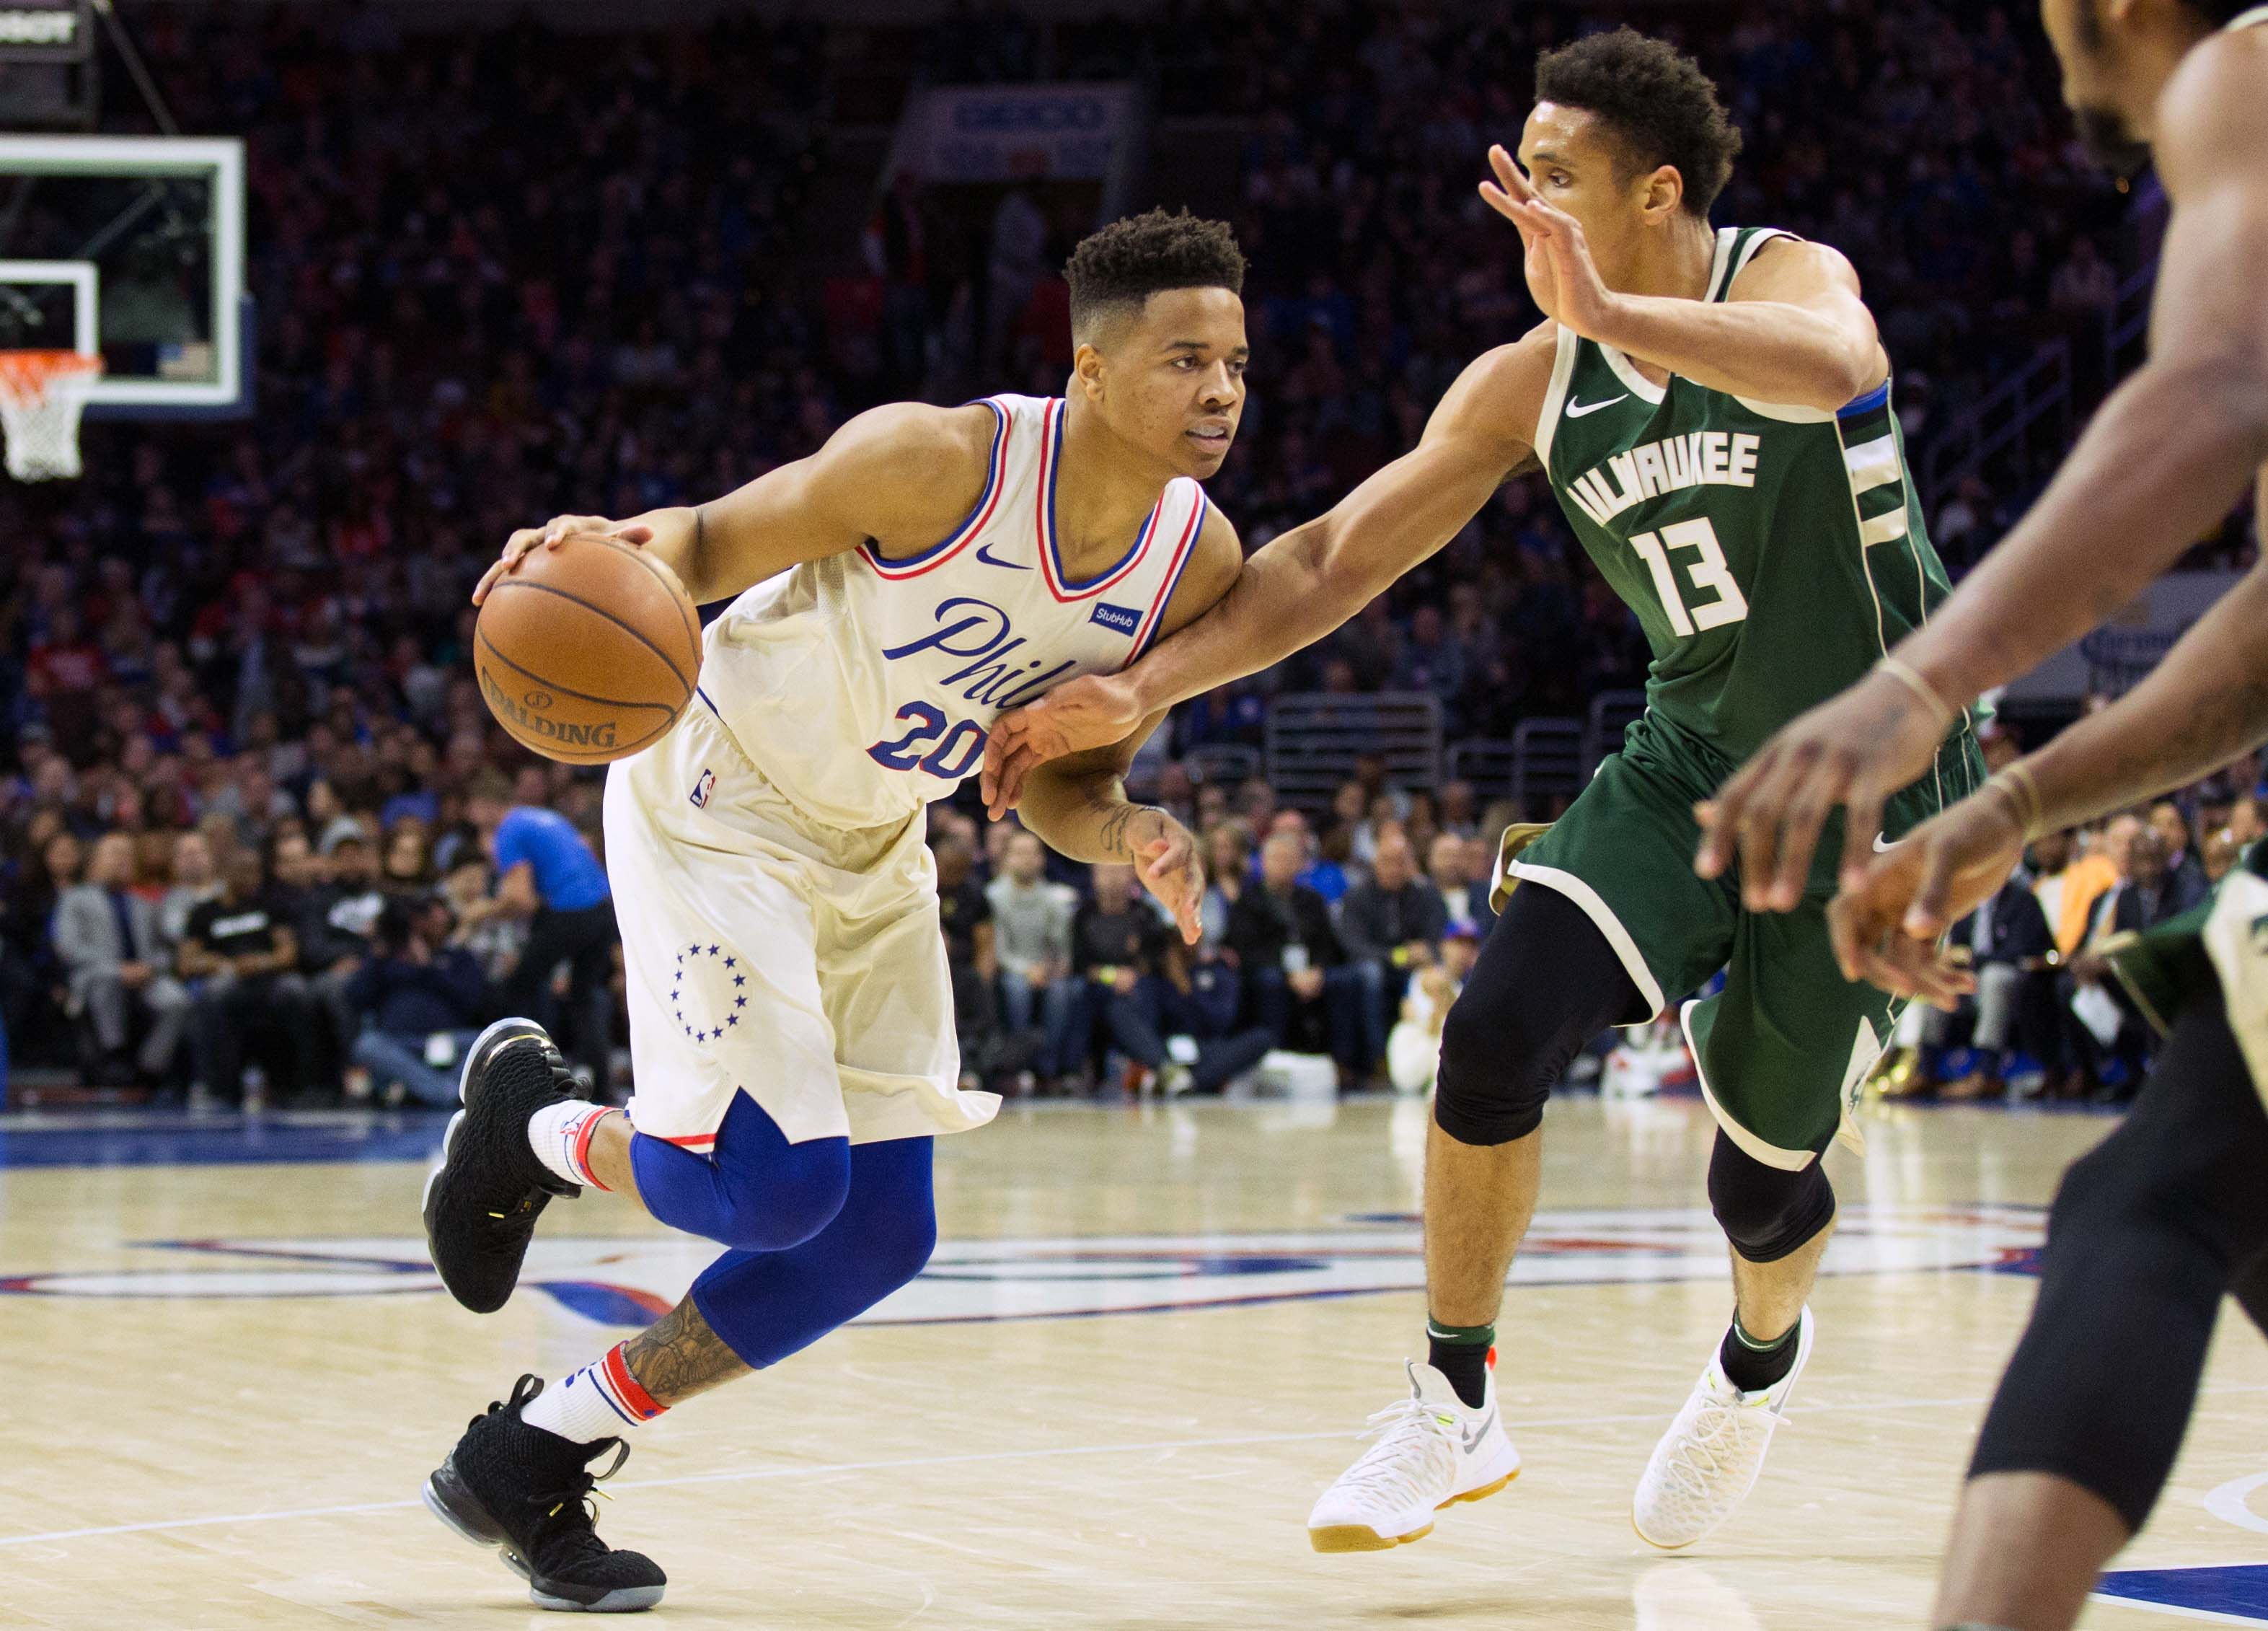 2018 NBA Playoffs: 3 things to watch for in Sixers vs. Heat